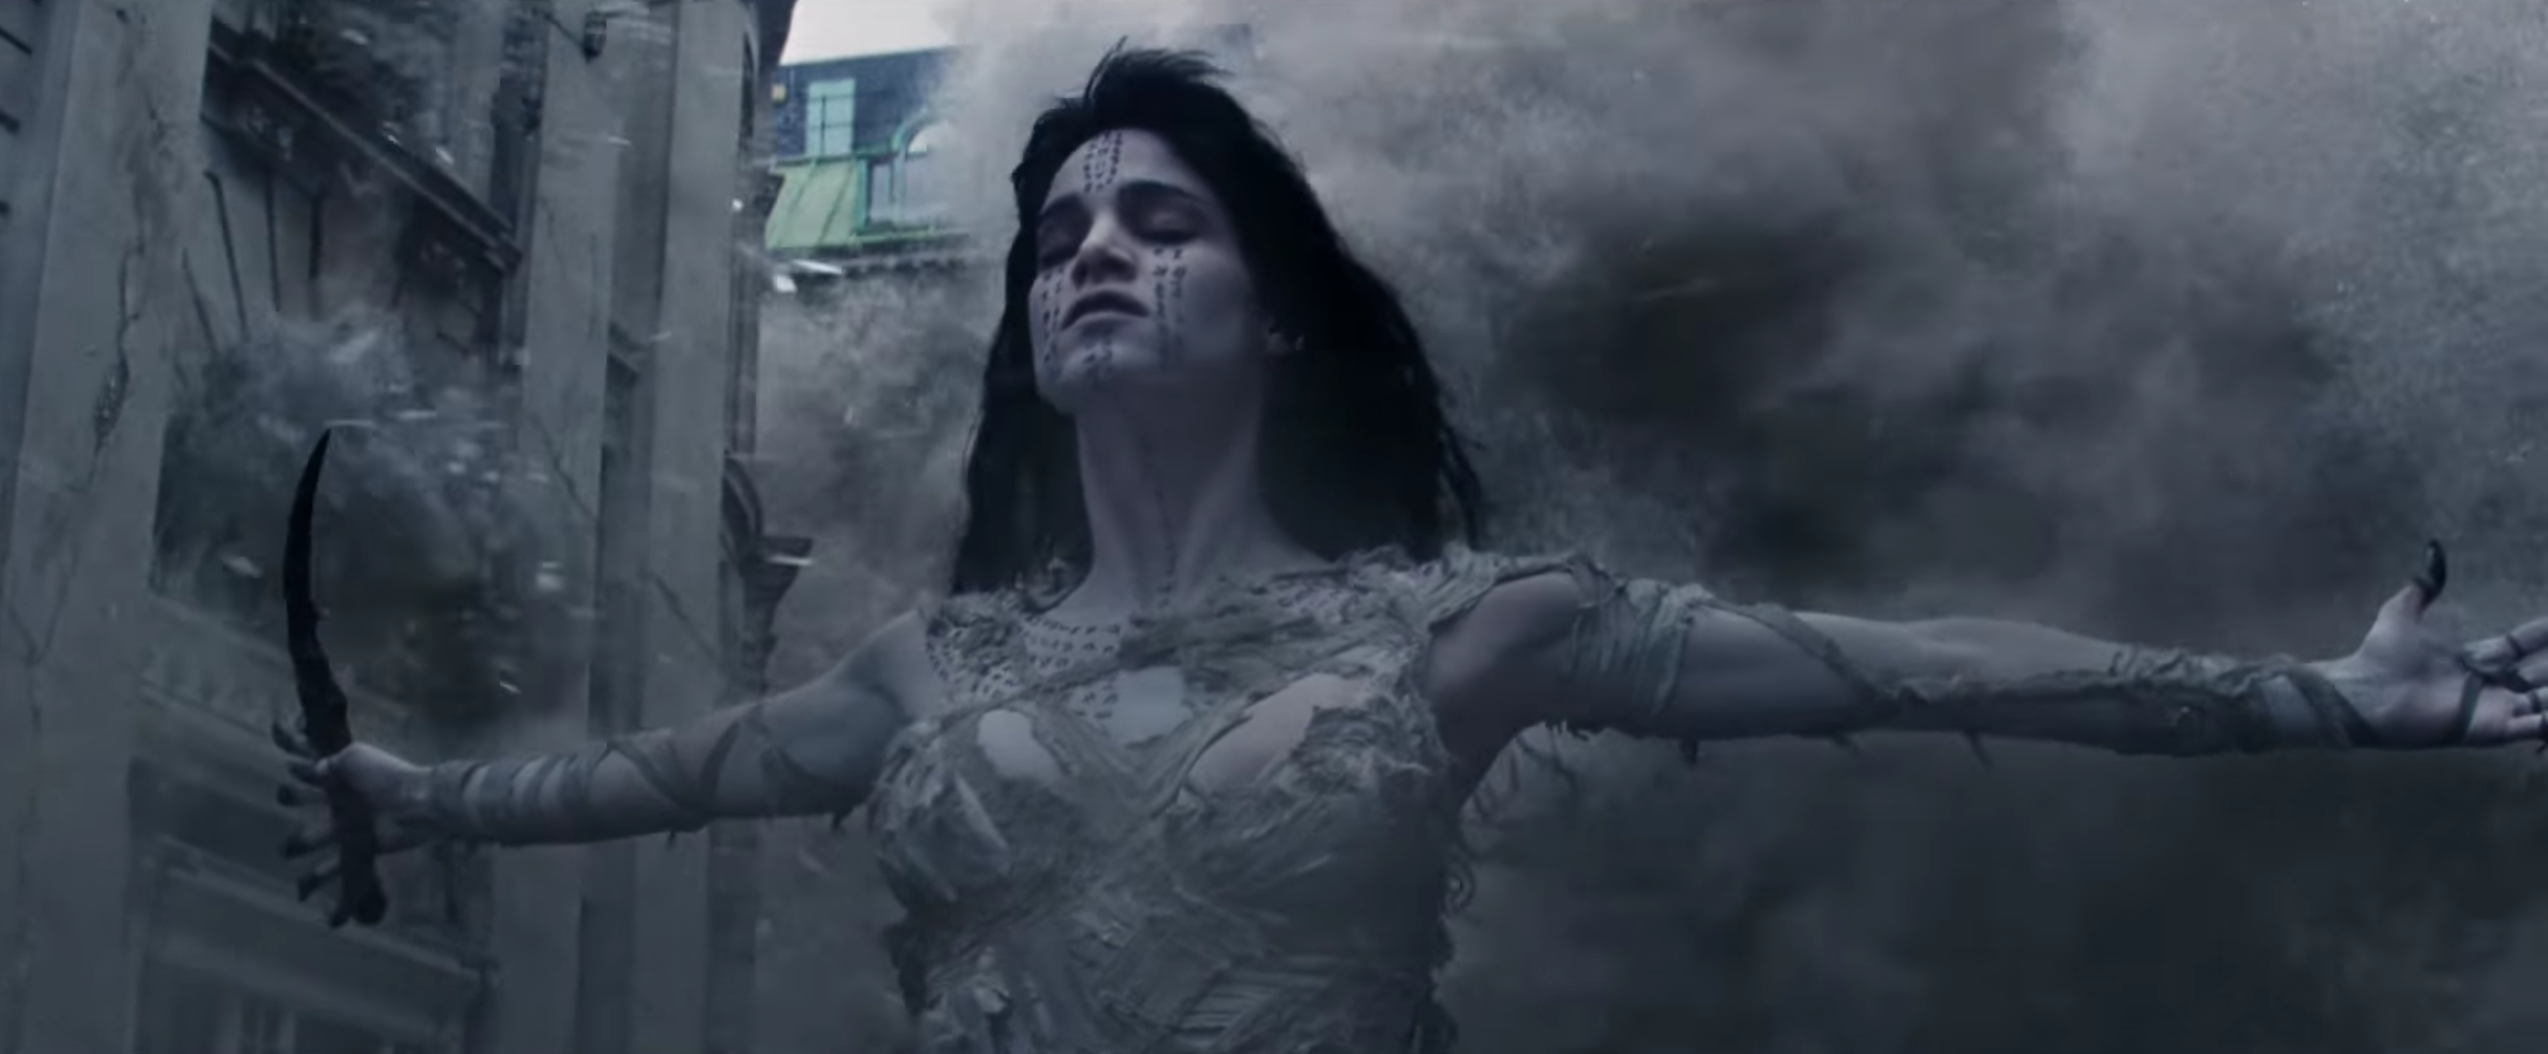 The second trailer for 'The Mummy' fleshes out the story